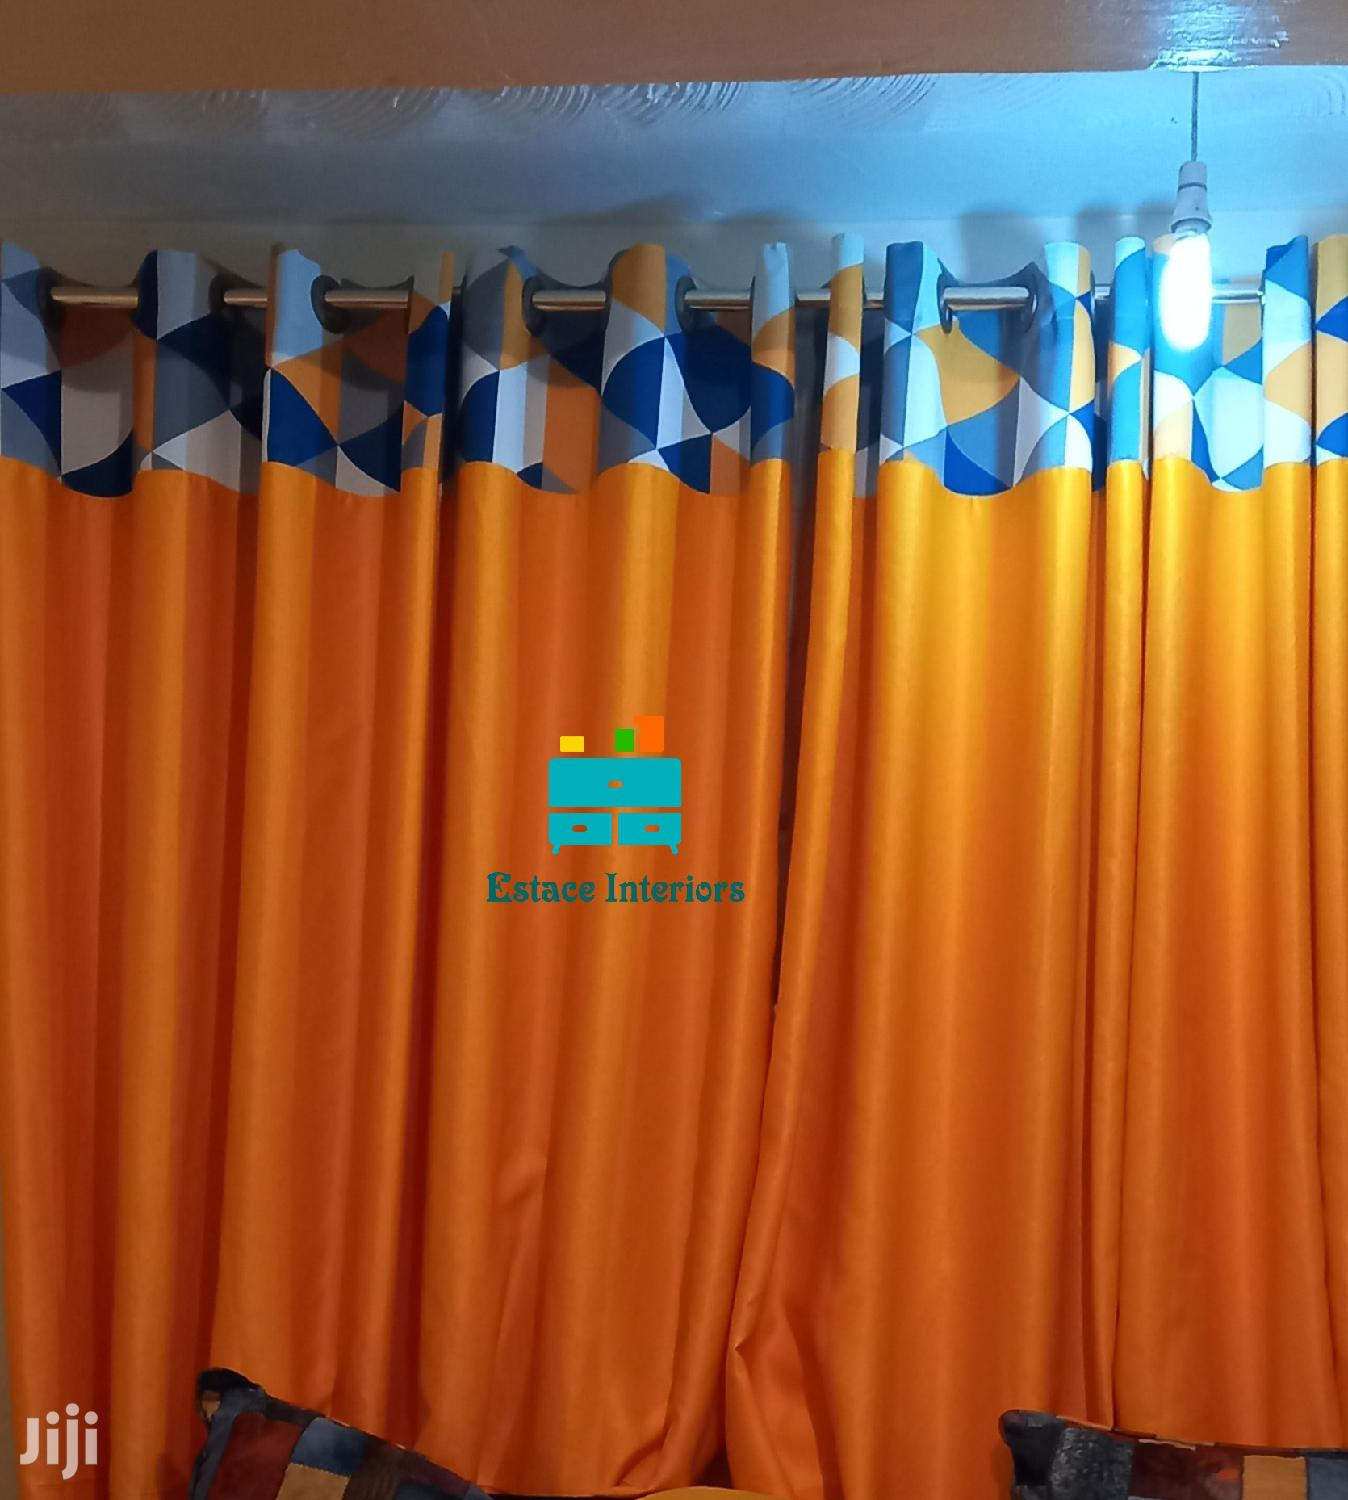 Curtains Curtains   Home Accessories for sale in Nairobi Central, Nairobi, Kenya